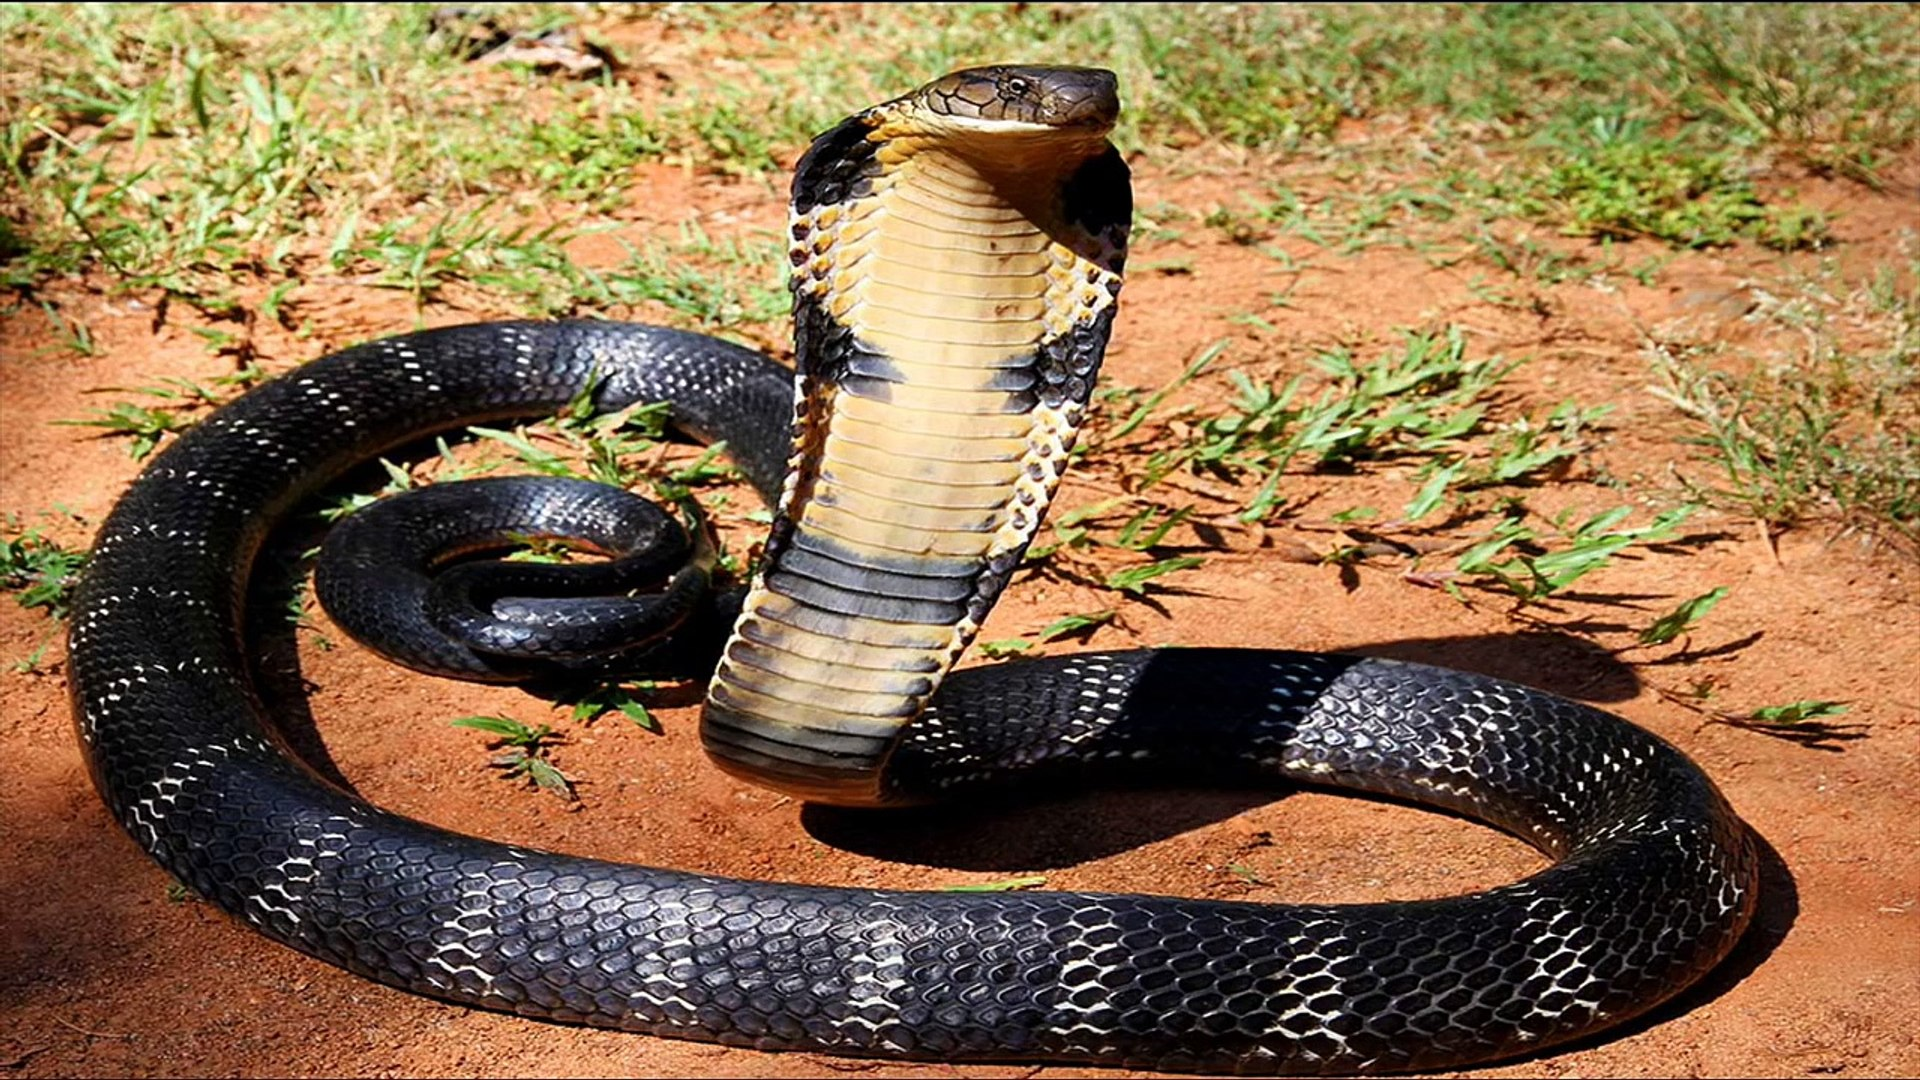 King Cobra Attack Alive : Most Dangerous Snake in the World - YouTube